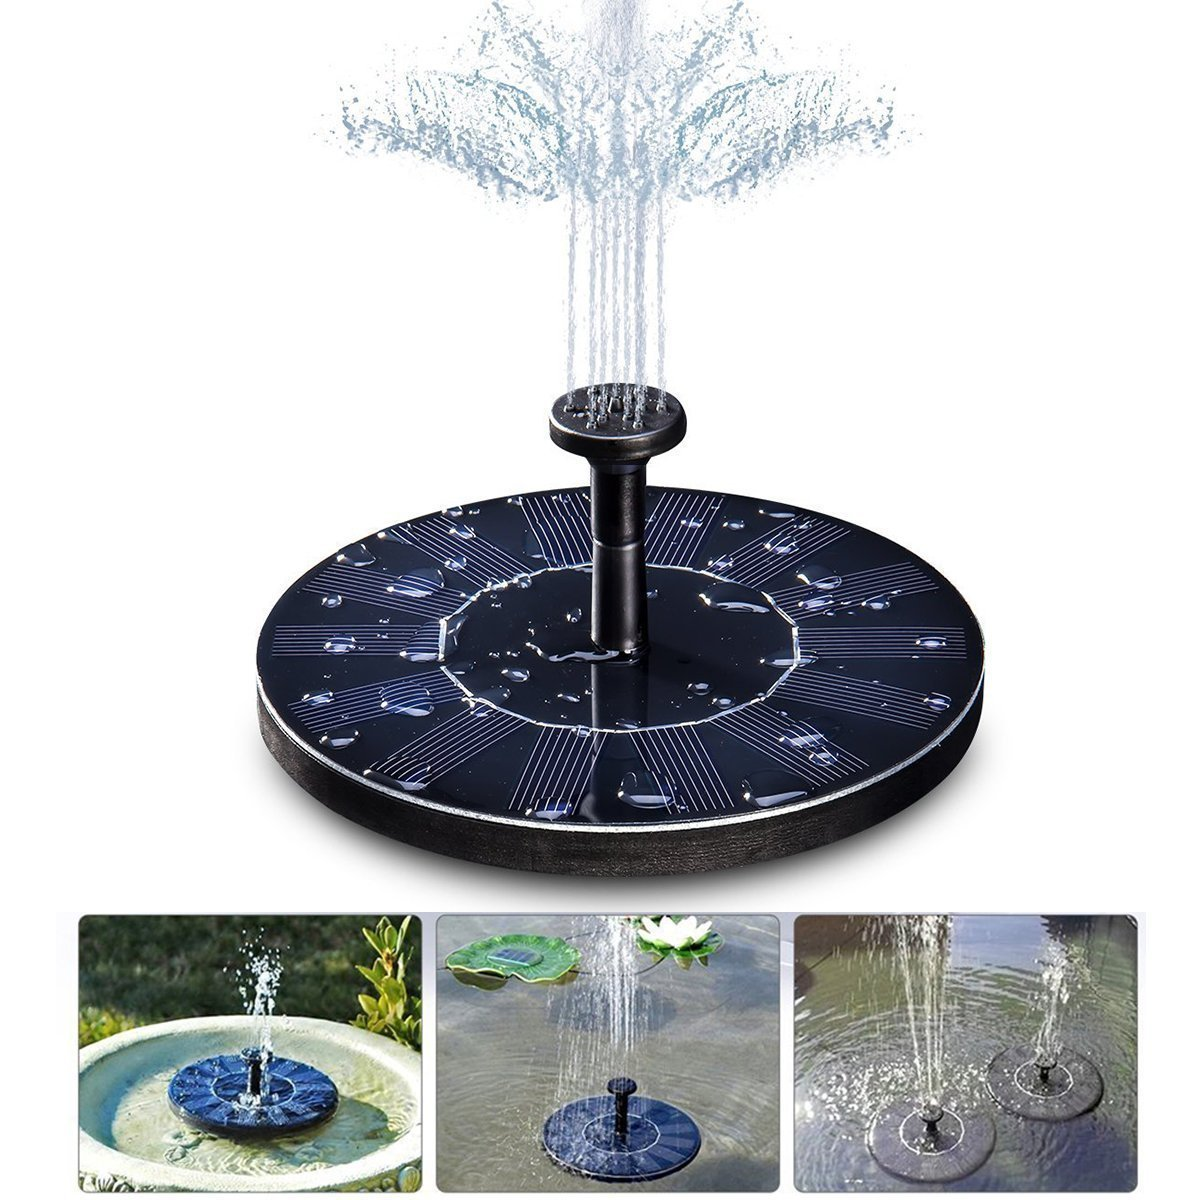 TCCSTAR Solar Fountain,Floating Solar Pump Bird Bath Fountain Self powered For Garden and Patio Watering (Black)